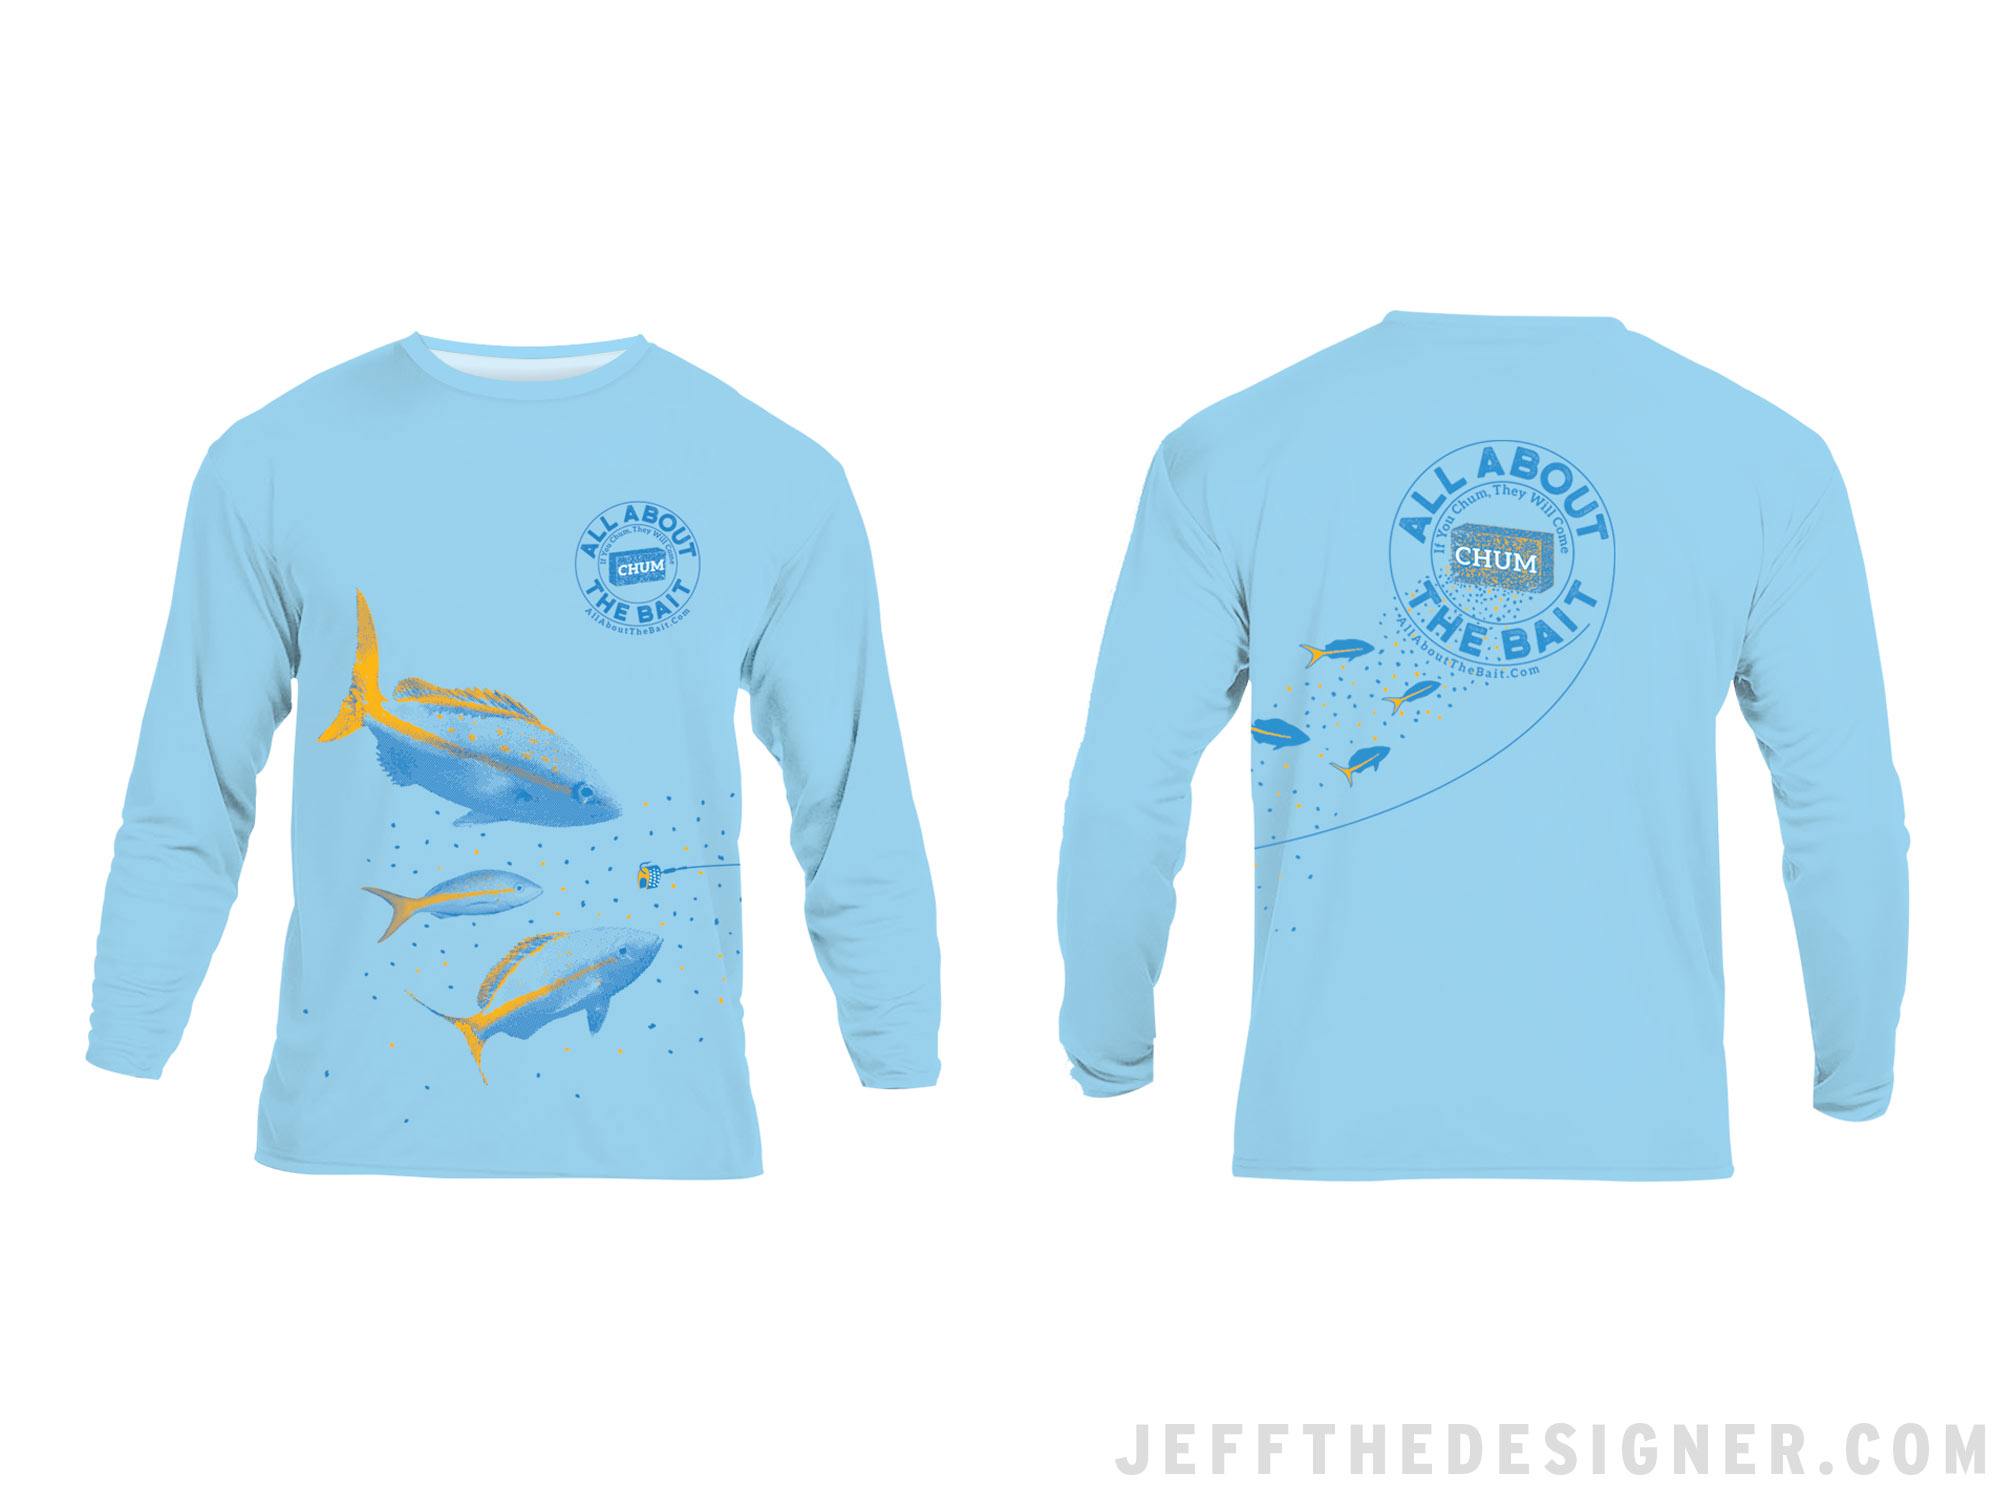 Fishing Shirt Design - Yellowtail Snappers on the Shirt Back Feeding on Chum Flowing from the Shirt Front